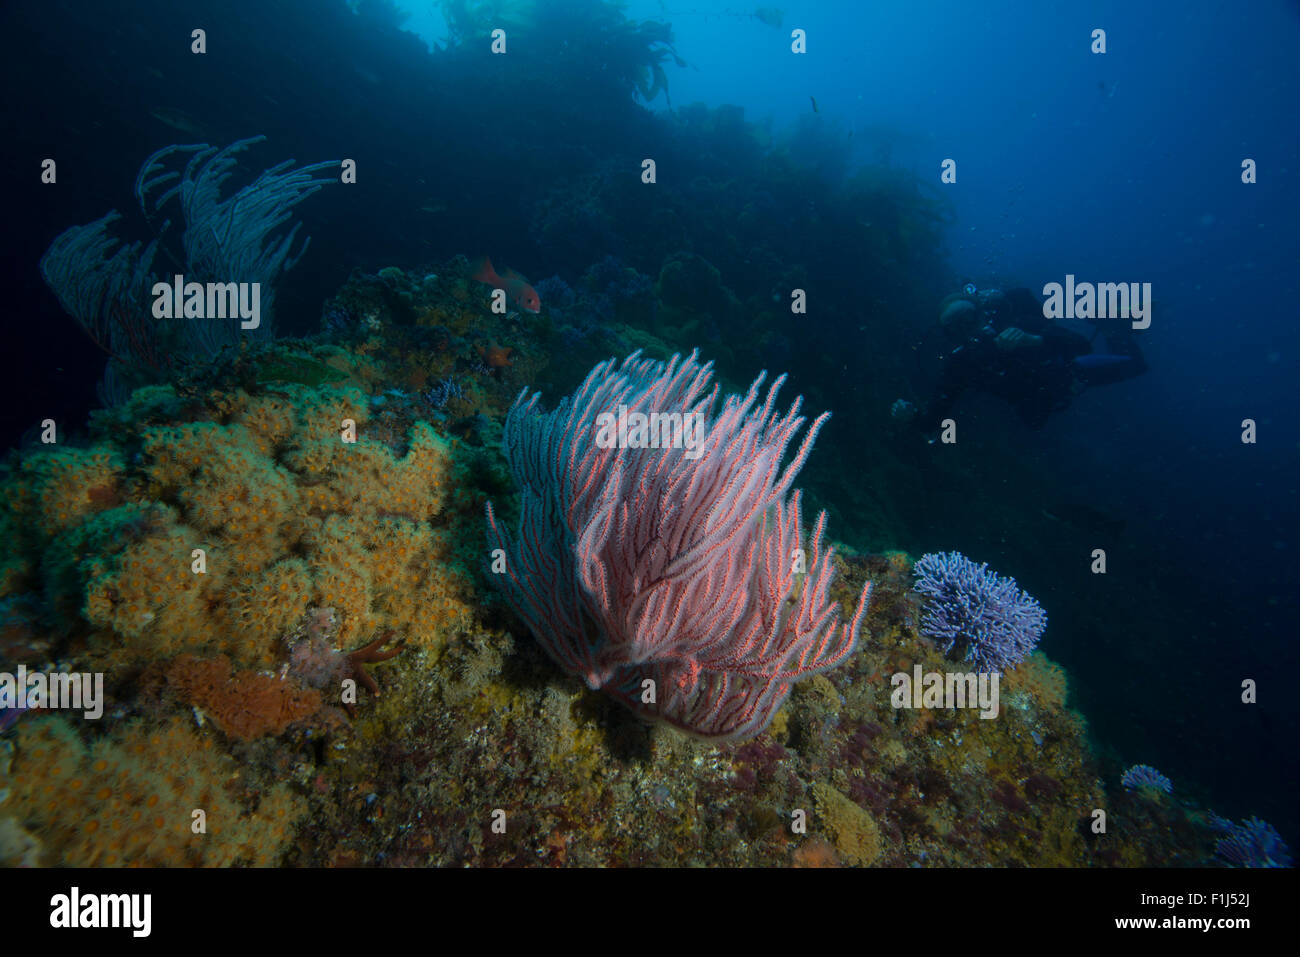 A marine protected area near Catalina Island, California - Stock Image